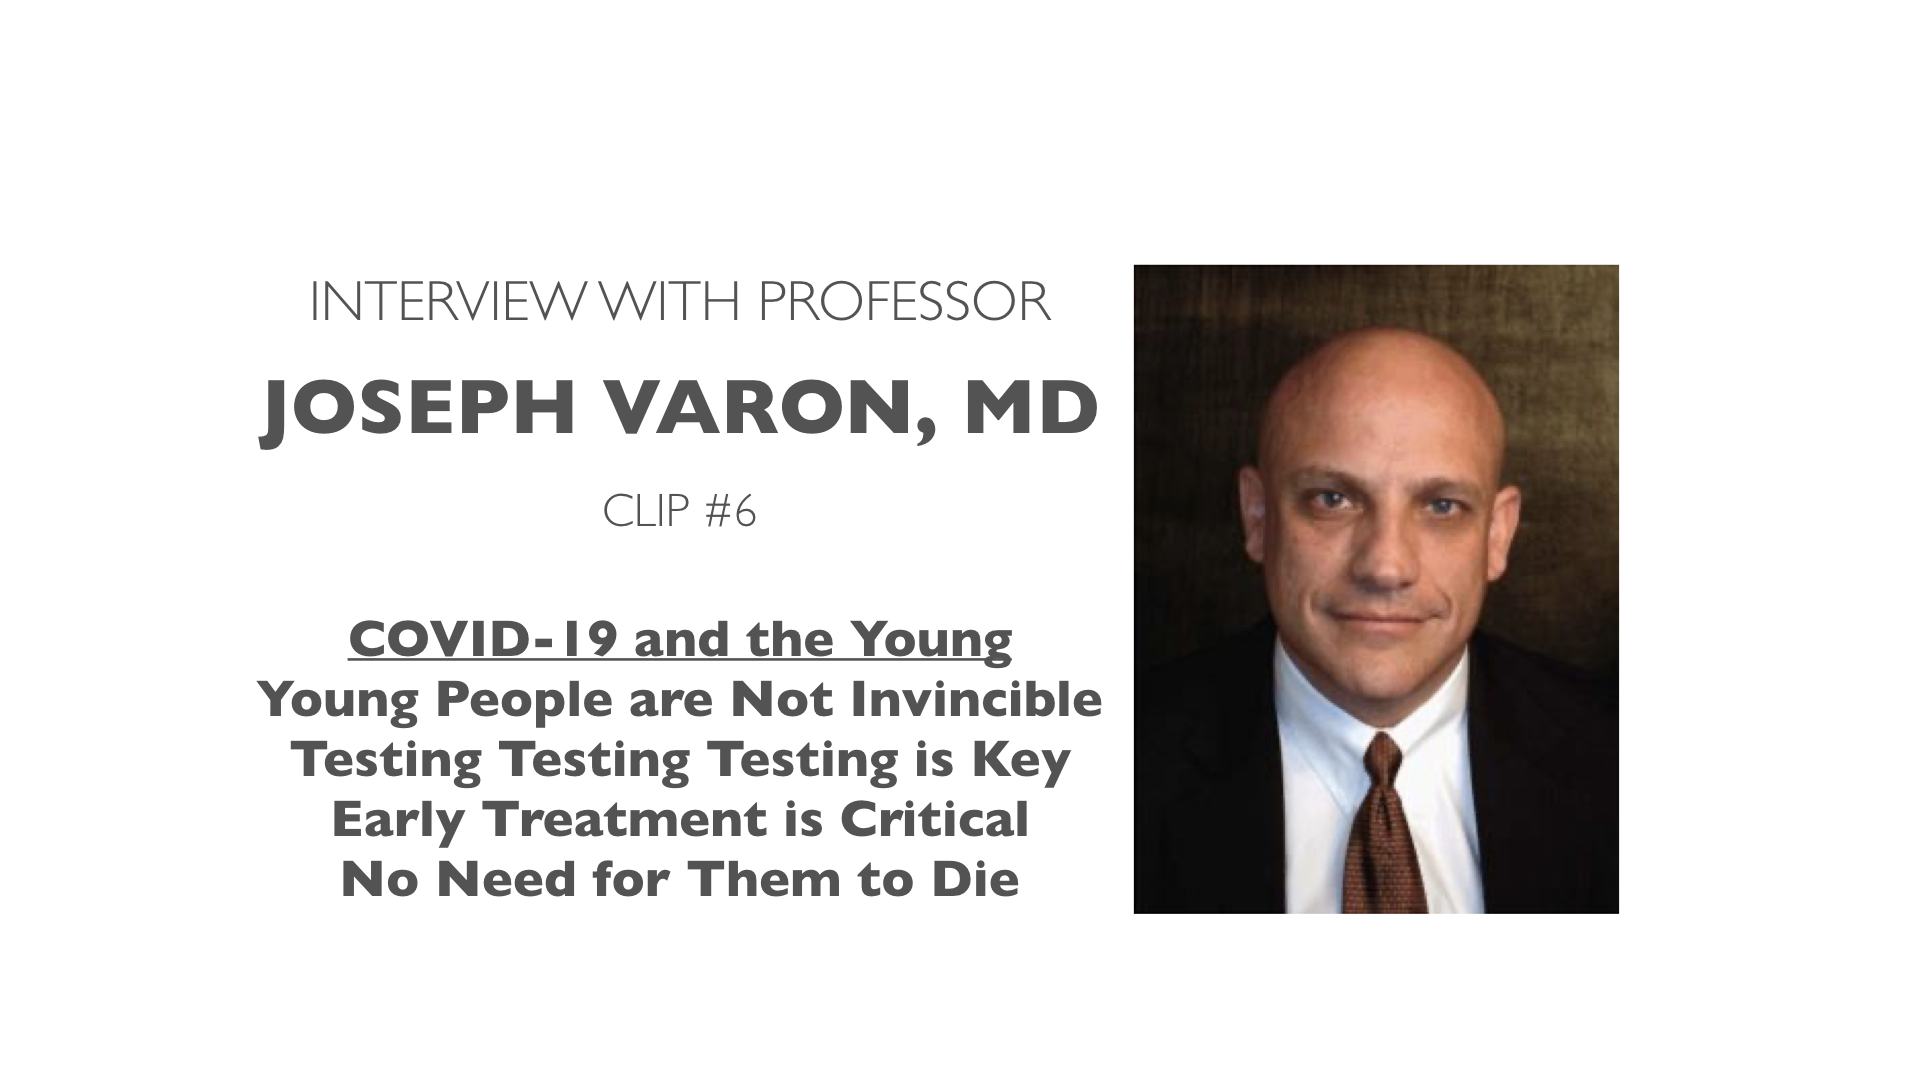 COVID-19 and the Young - Clip #6 of Prof. J. Varon Interview